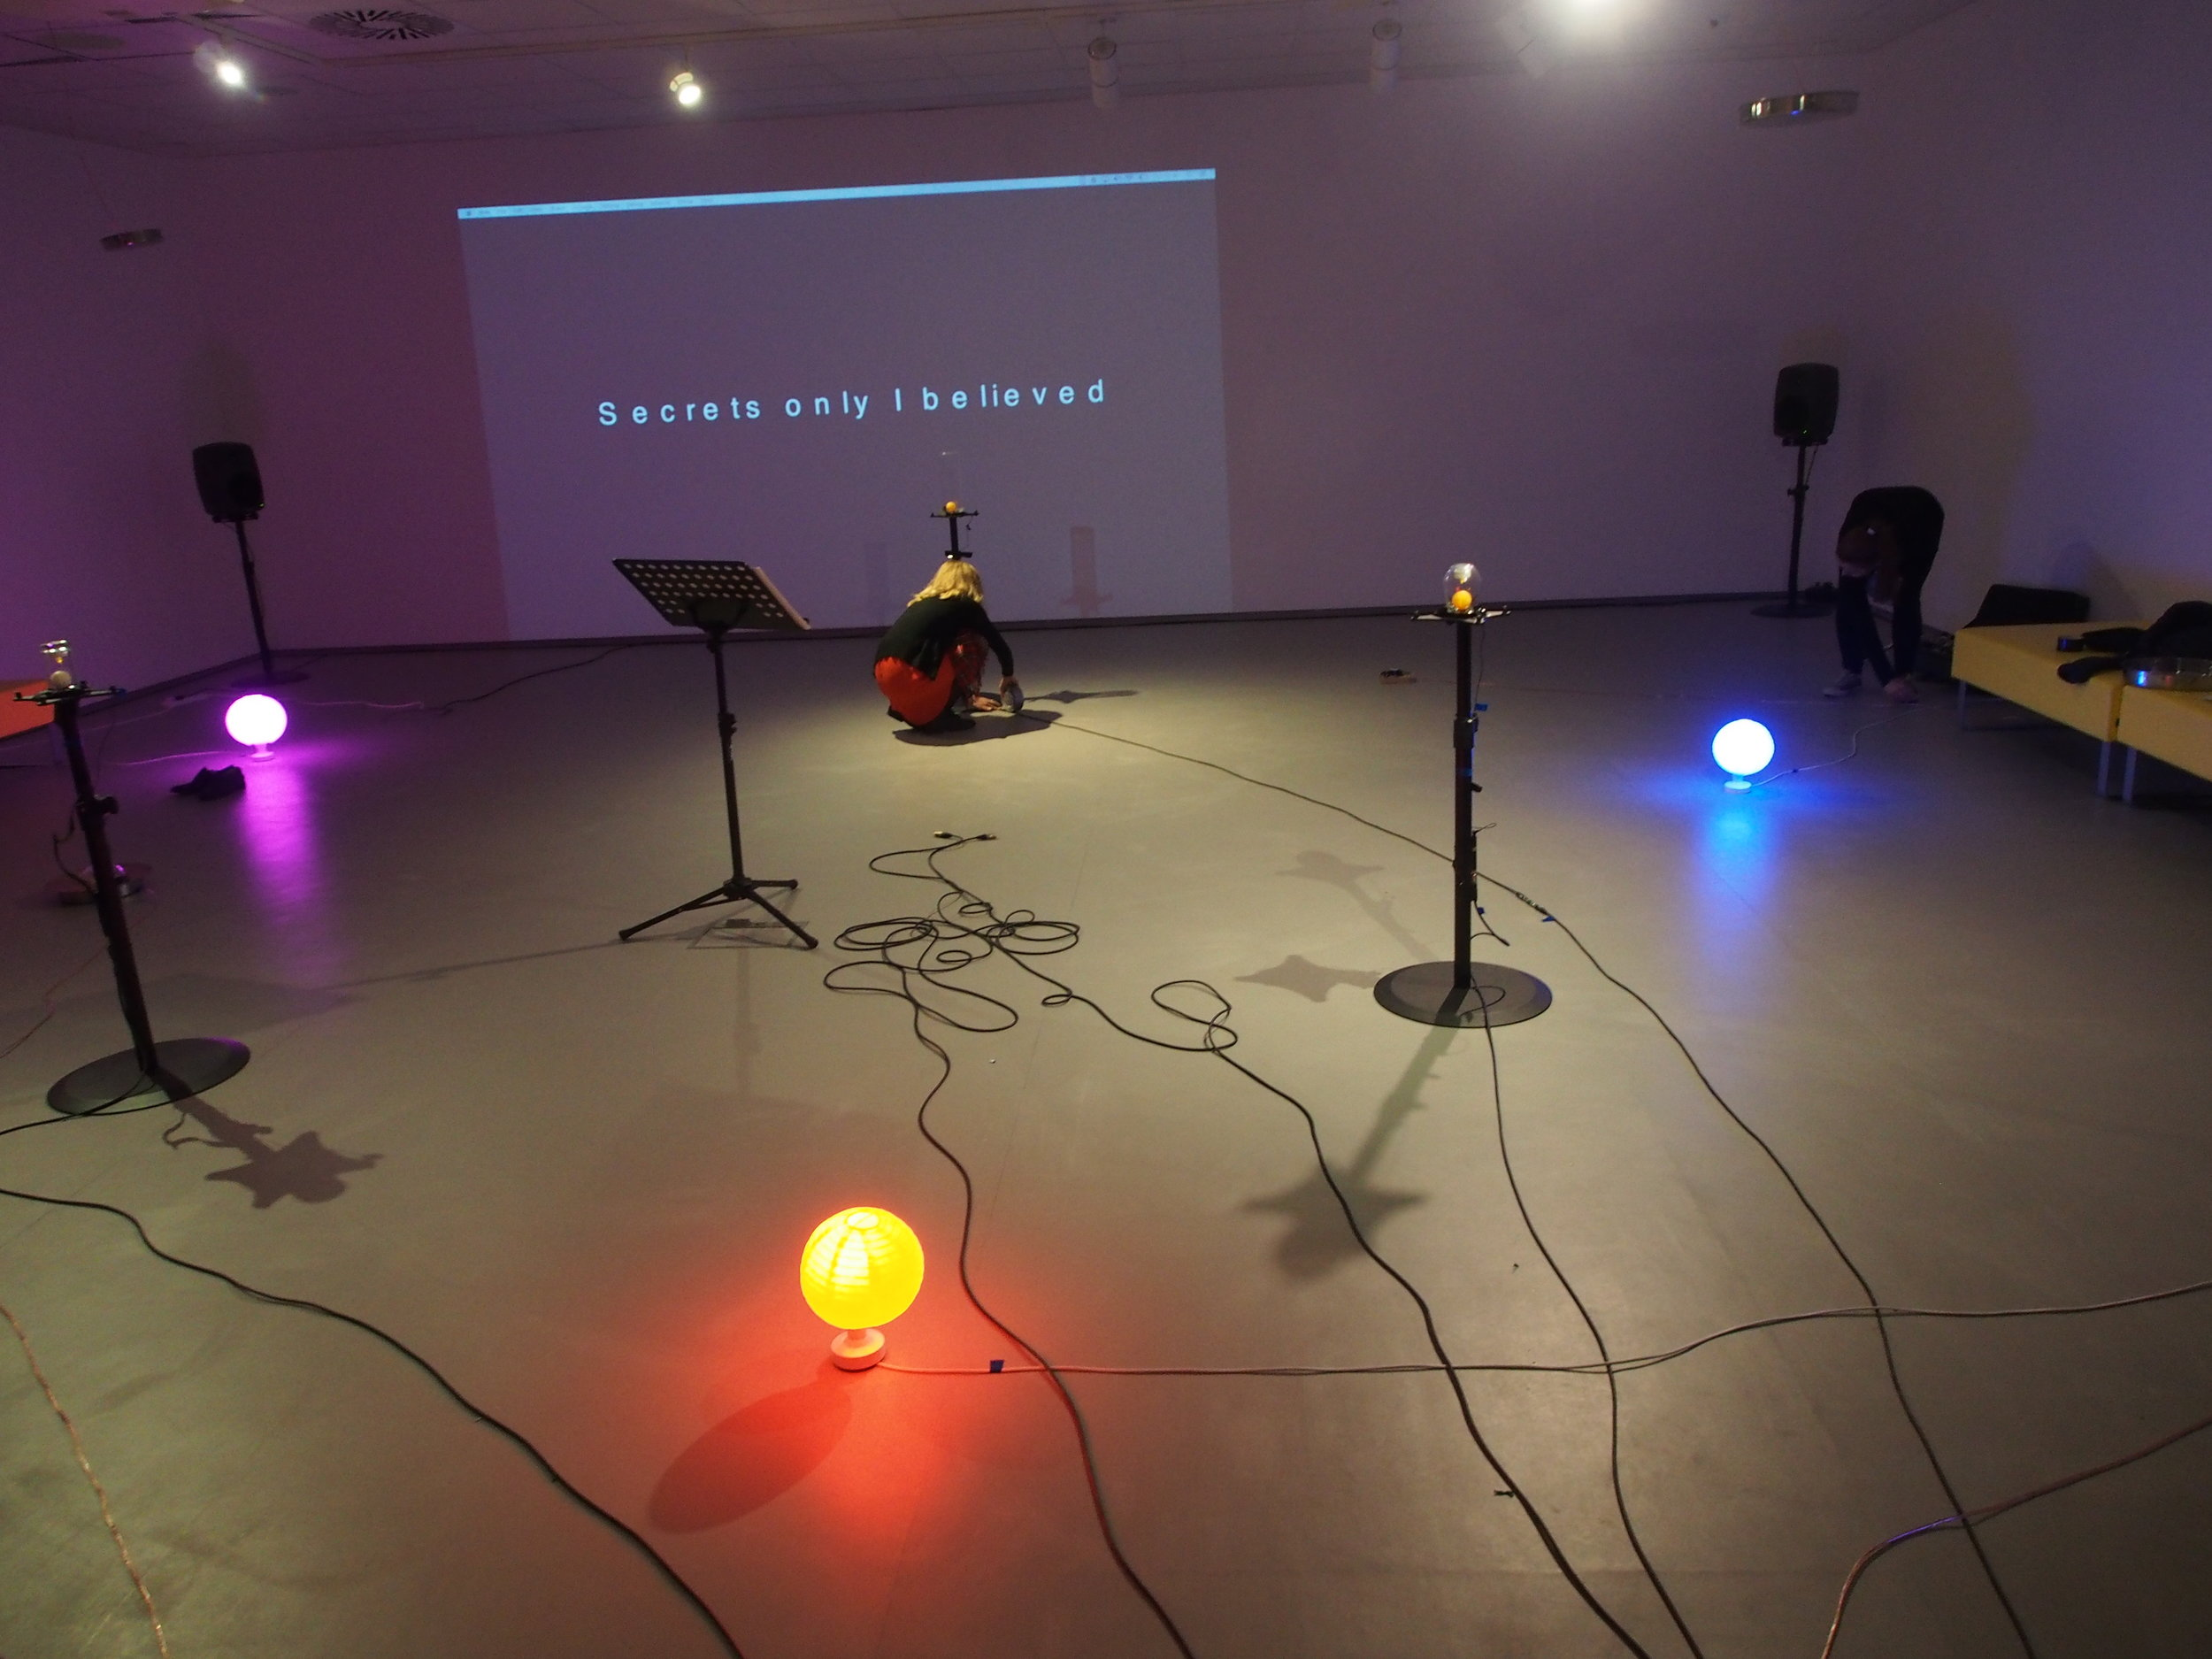 Thanks to Fiona Robertson and Kadri Soerunurk (Sound Festival), Pete Stollery and Adam Cresser (University of Aberdeen), Jim Ewen (Anatomy Rooms), Tasmin Greenlaw and Fraser MacDonald (Suttie Arts Space), all at TechFest, and to the poet Michael Rattee.